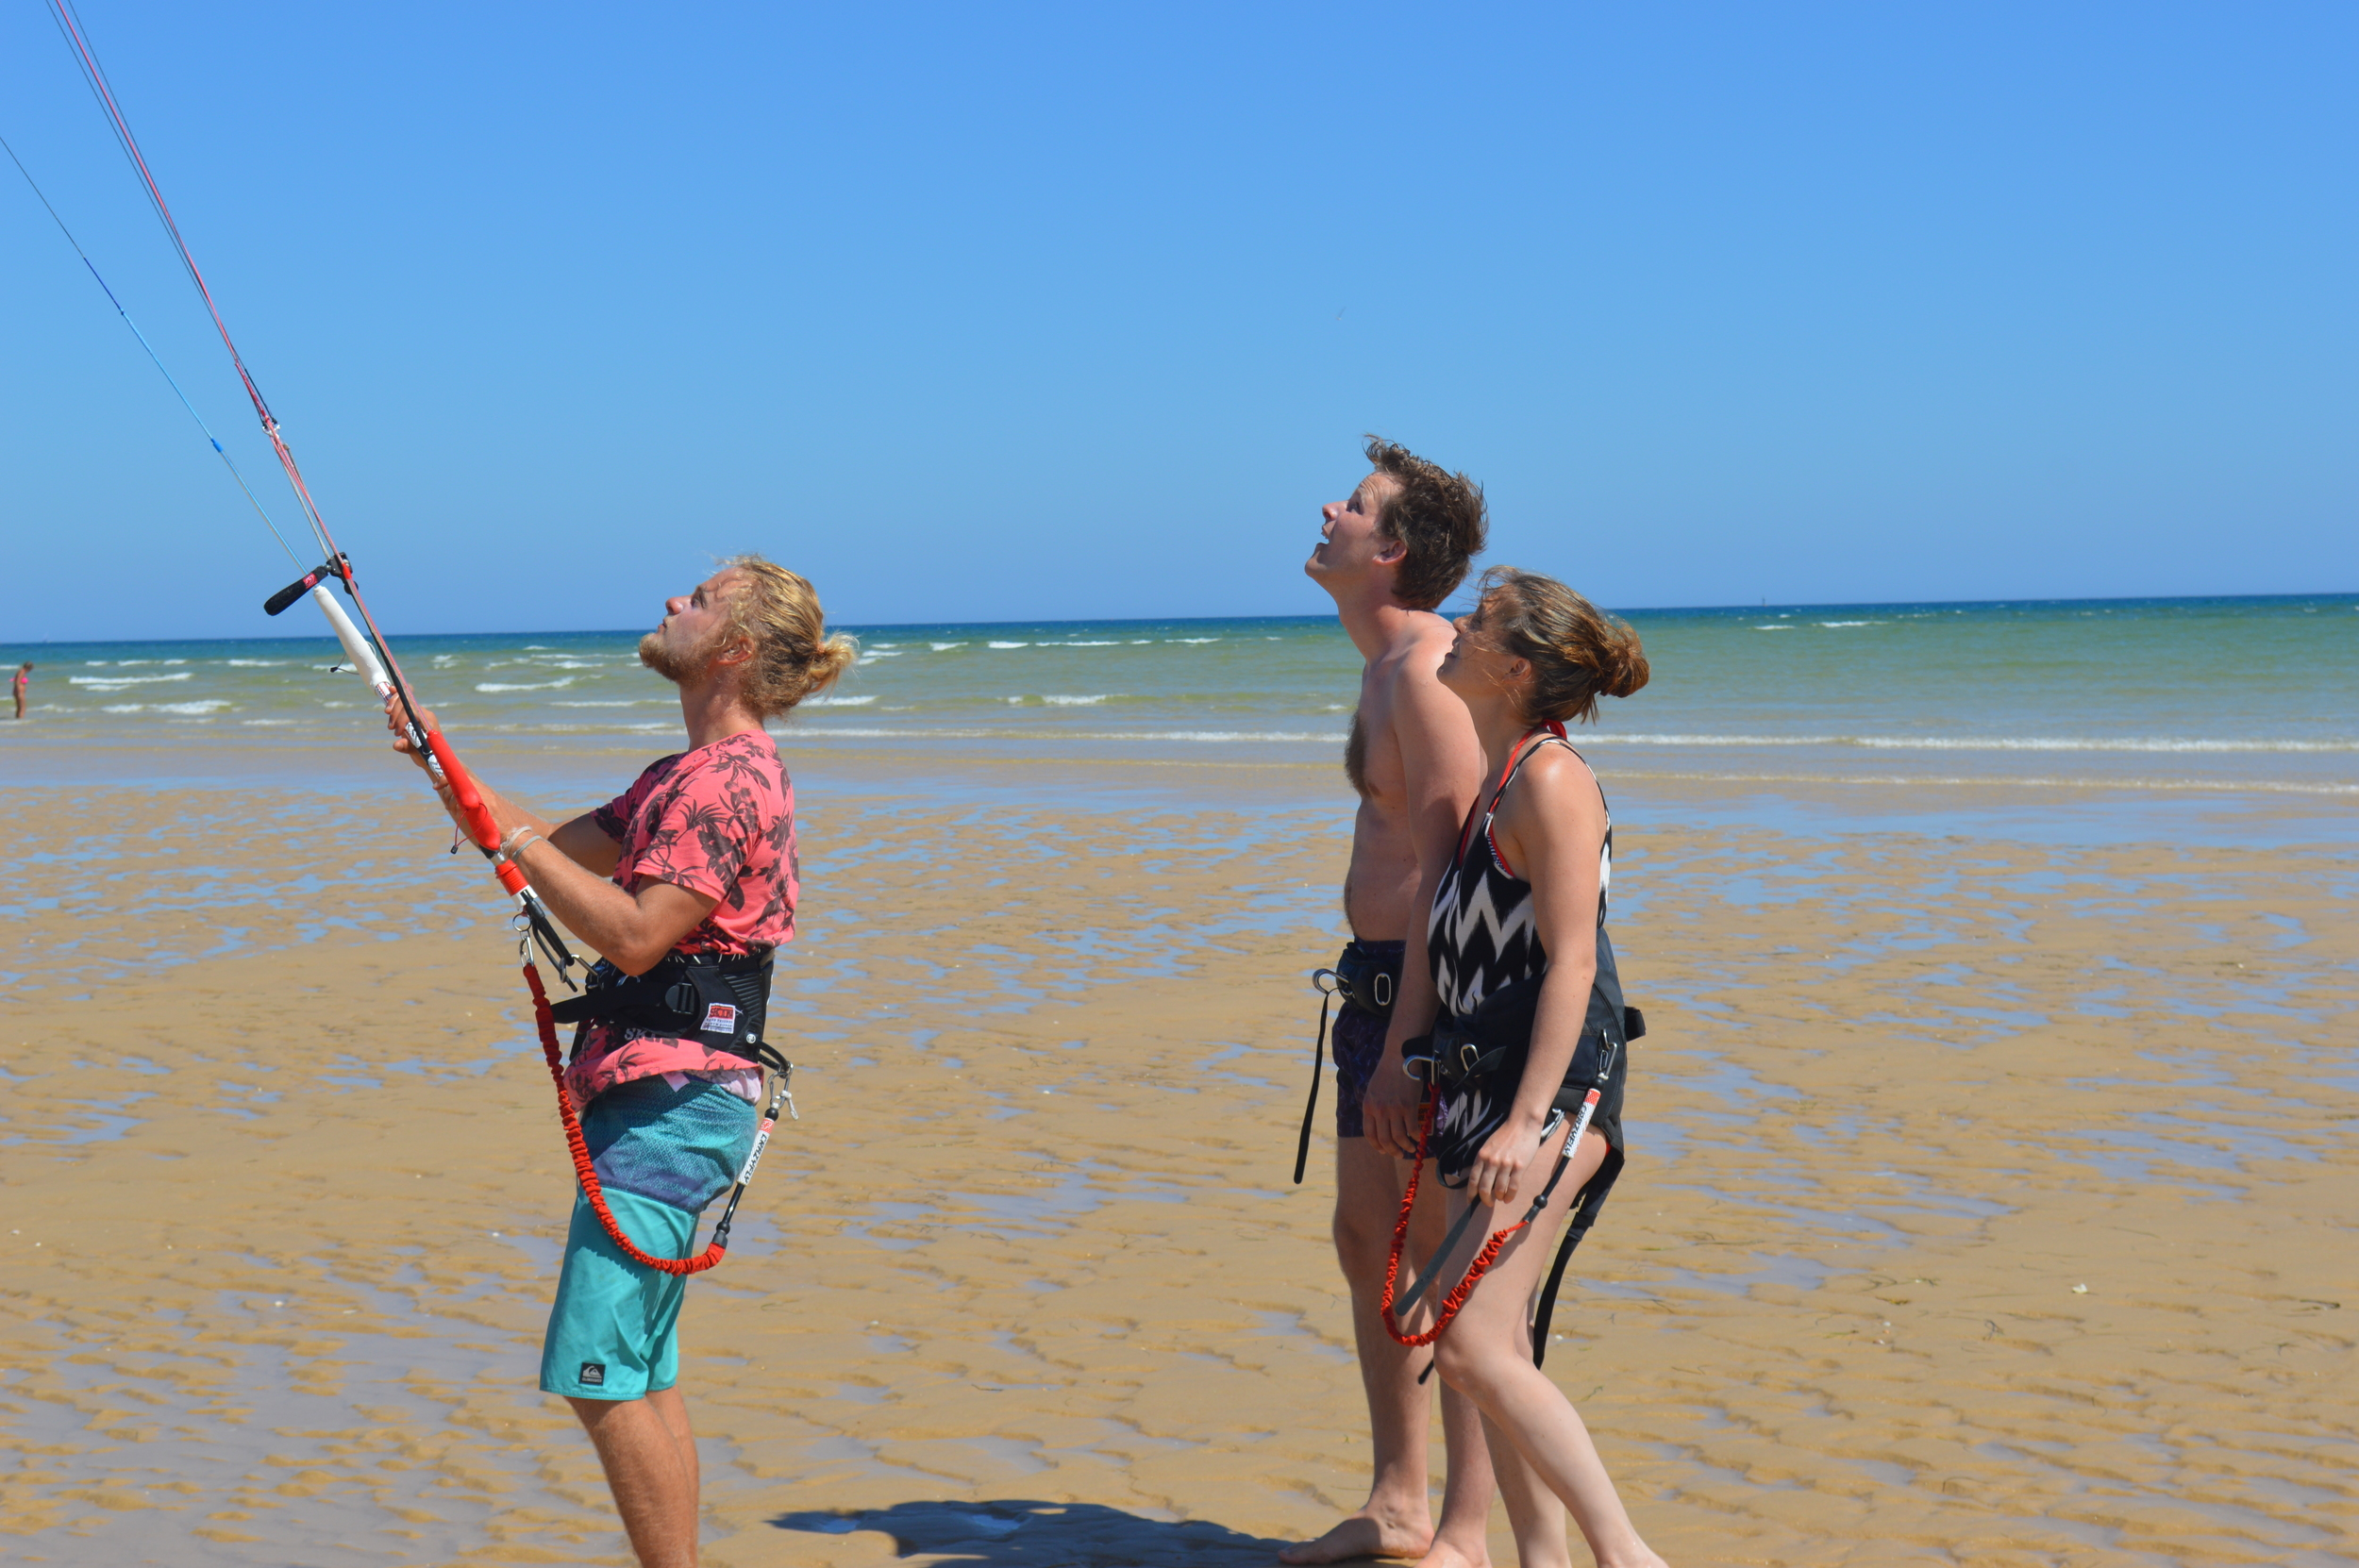 Demonstrating Kite Handling - Fuzeta Beach